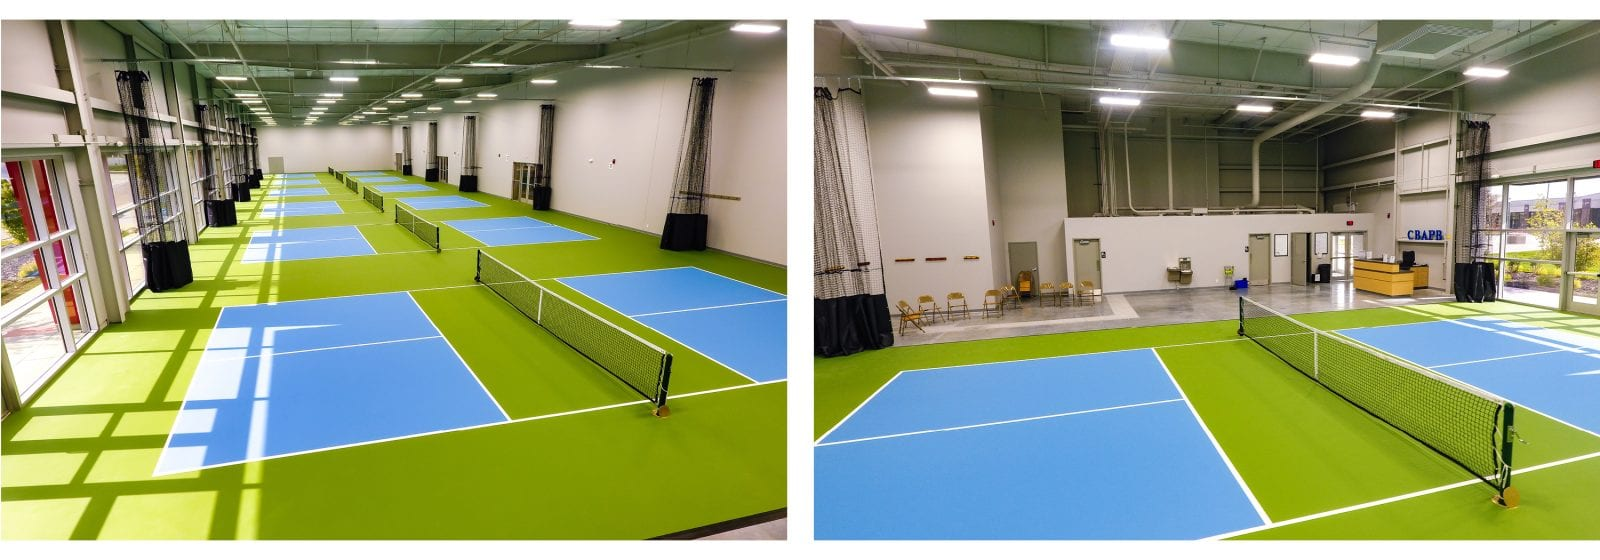 Iowa West Field Club Pickleball Court